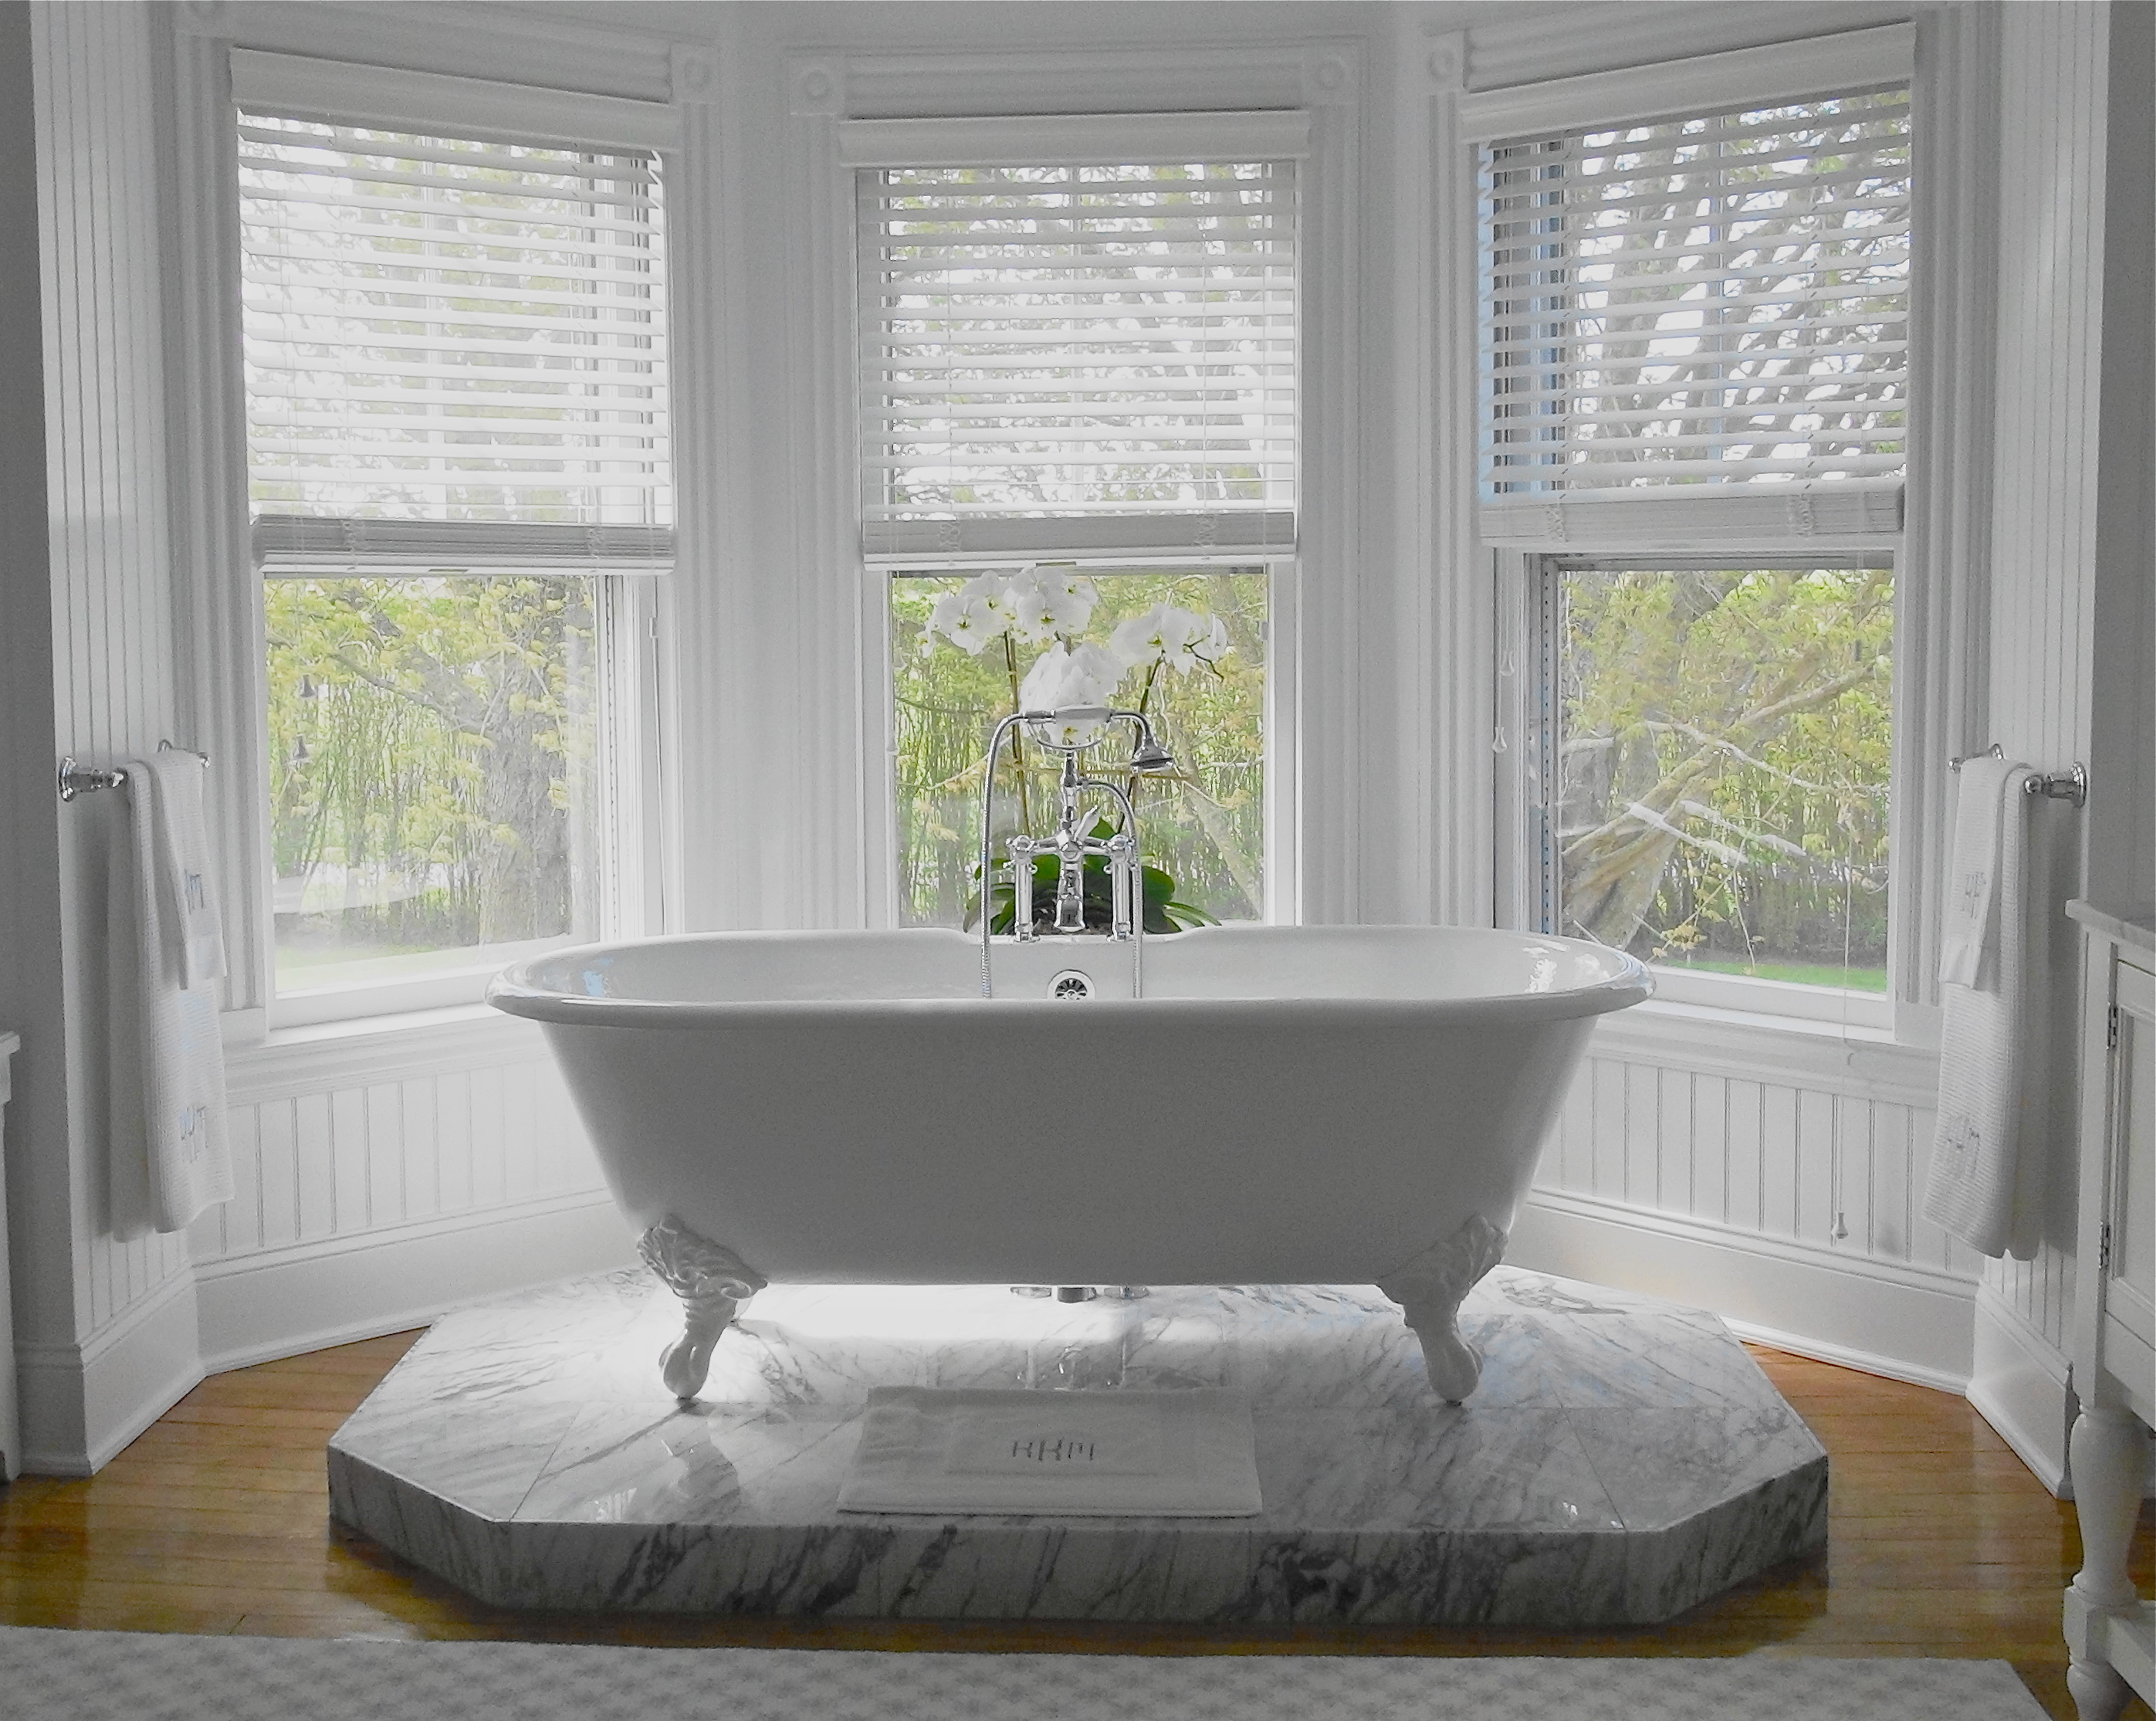 Good Morning Beautiful Bath Tub Kdh Makes Over Our Master